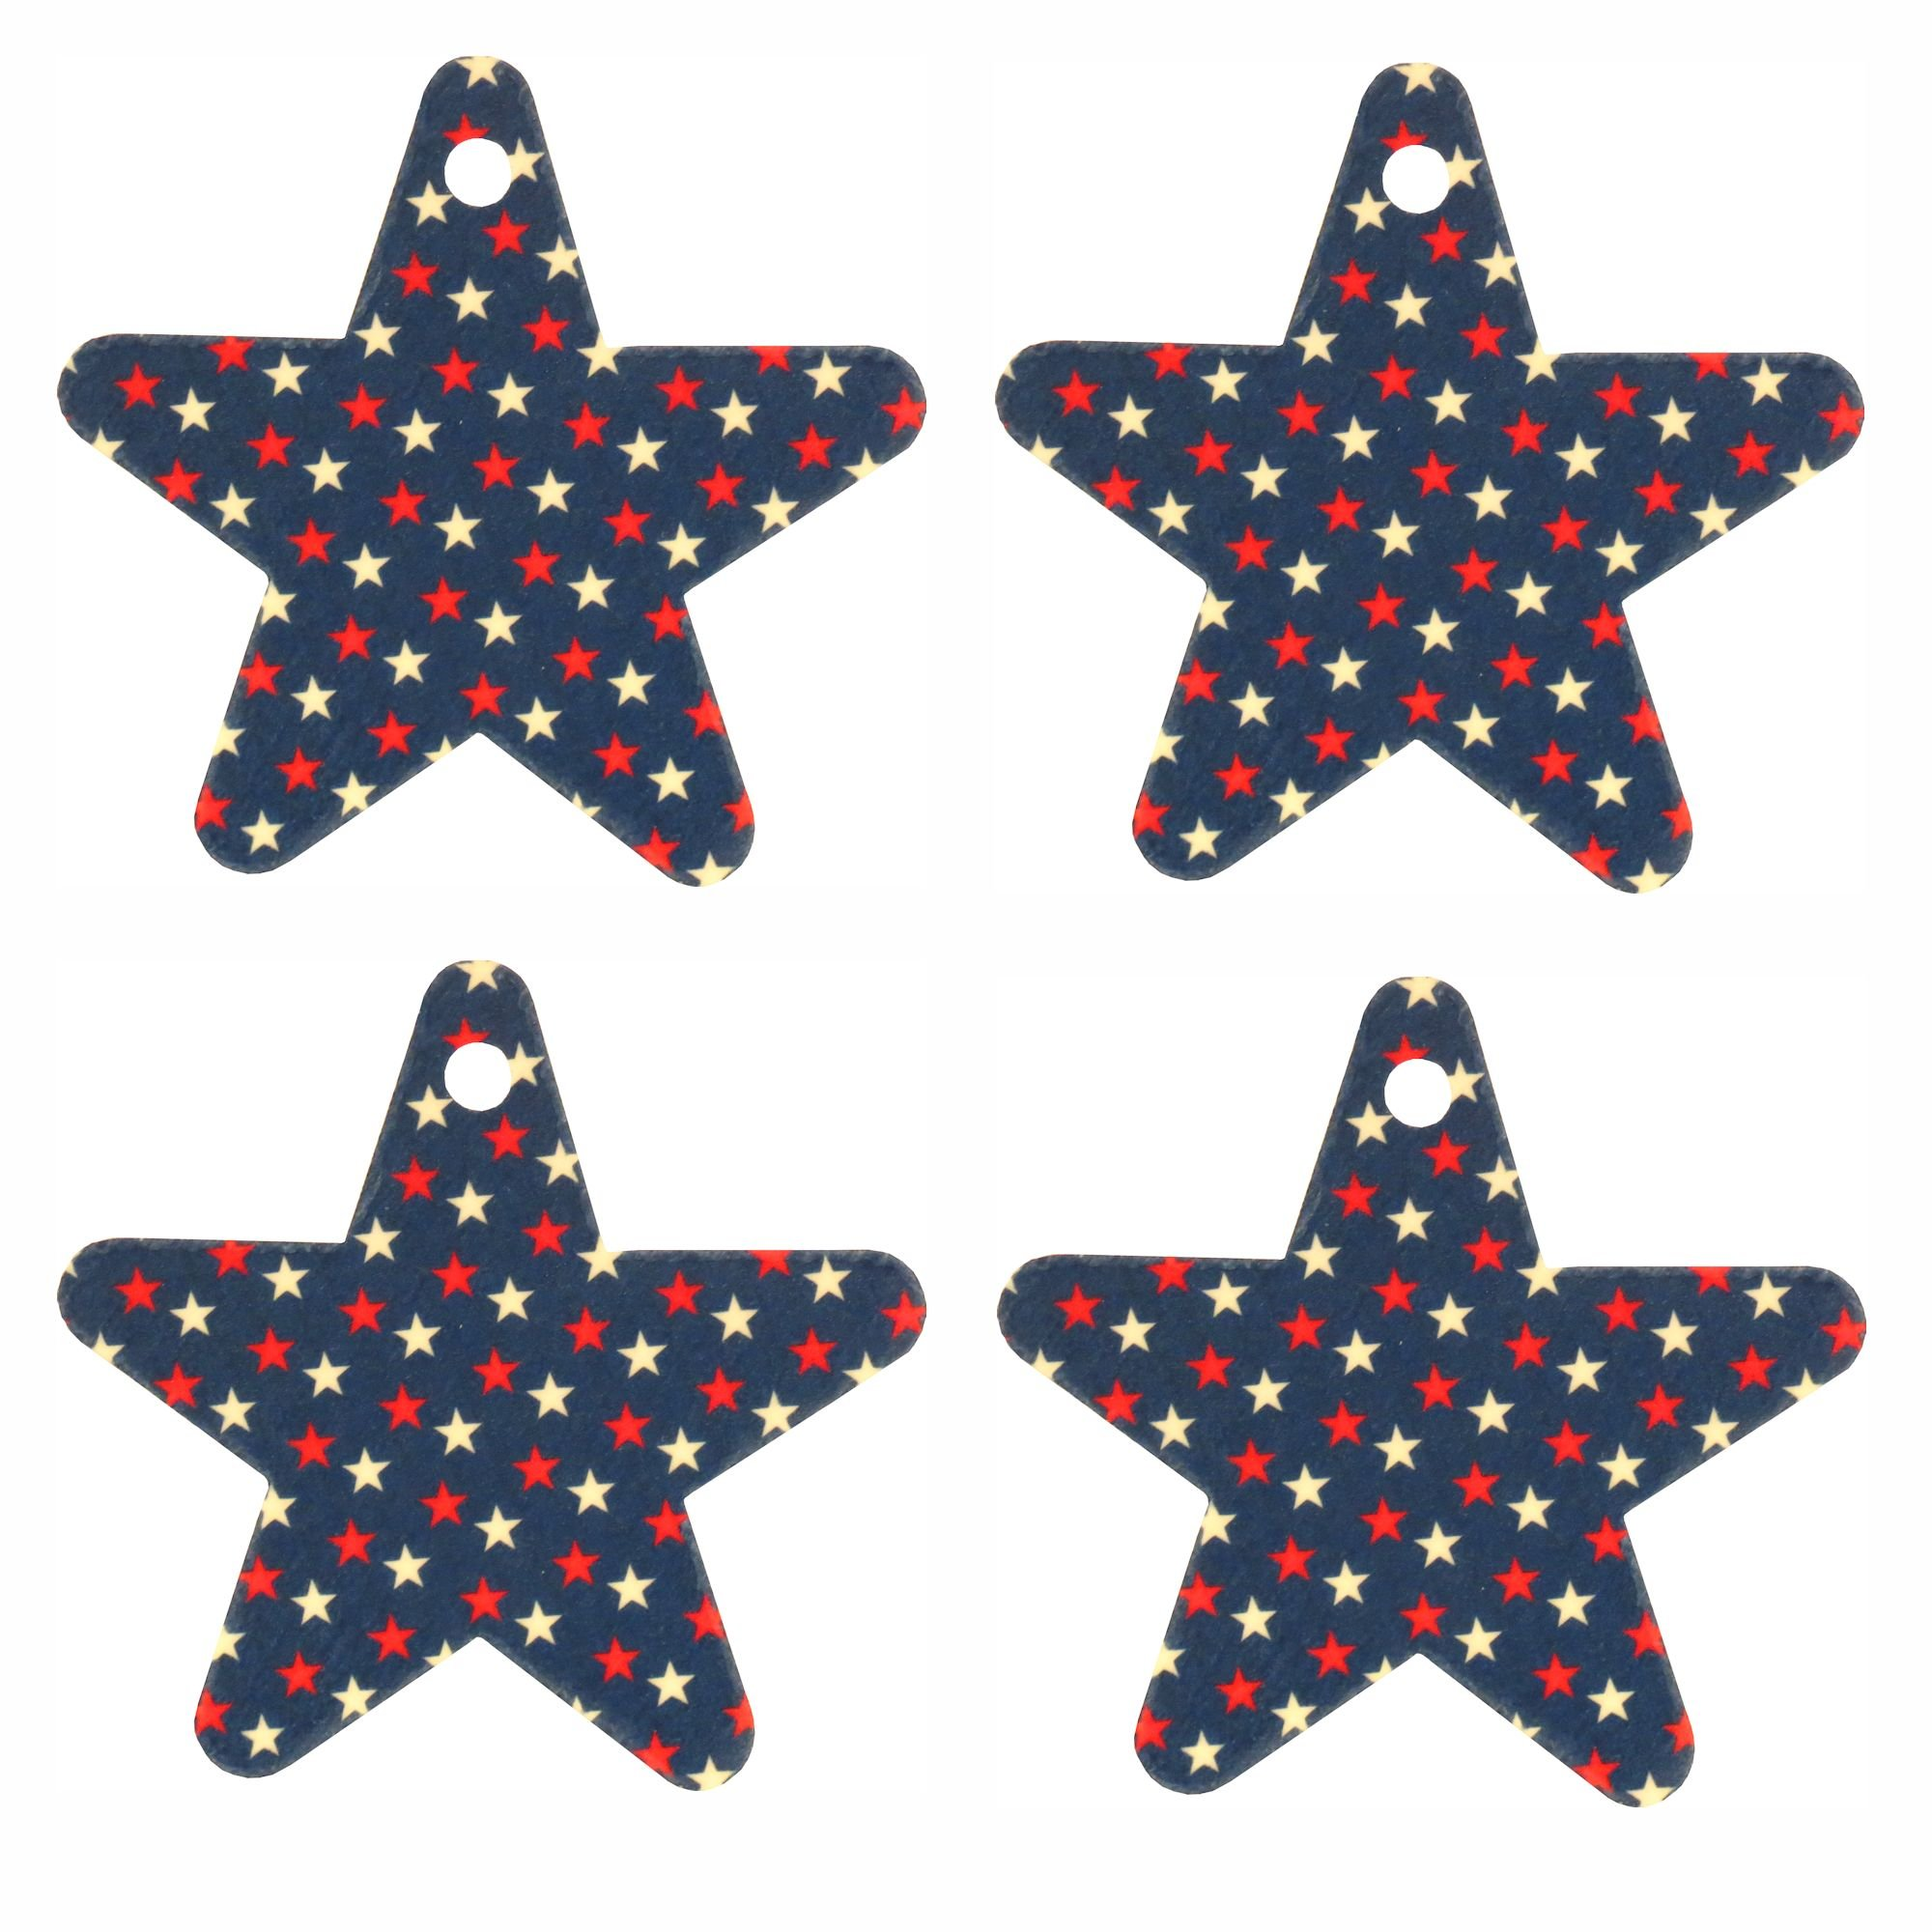 Set of Stars on Star Air Fresheners, Cedarwood Essential Oil by Eclectic Lady (Image #1)